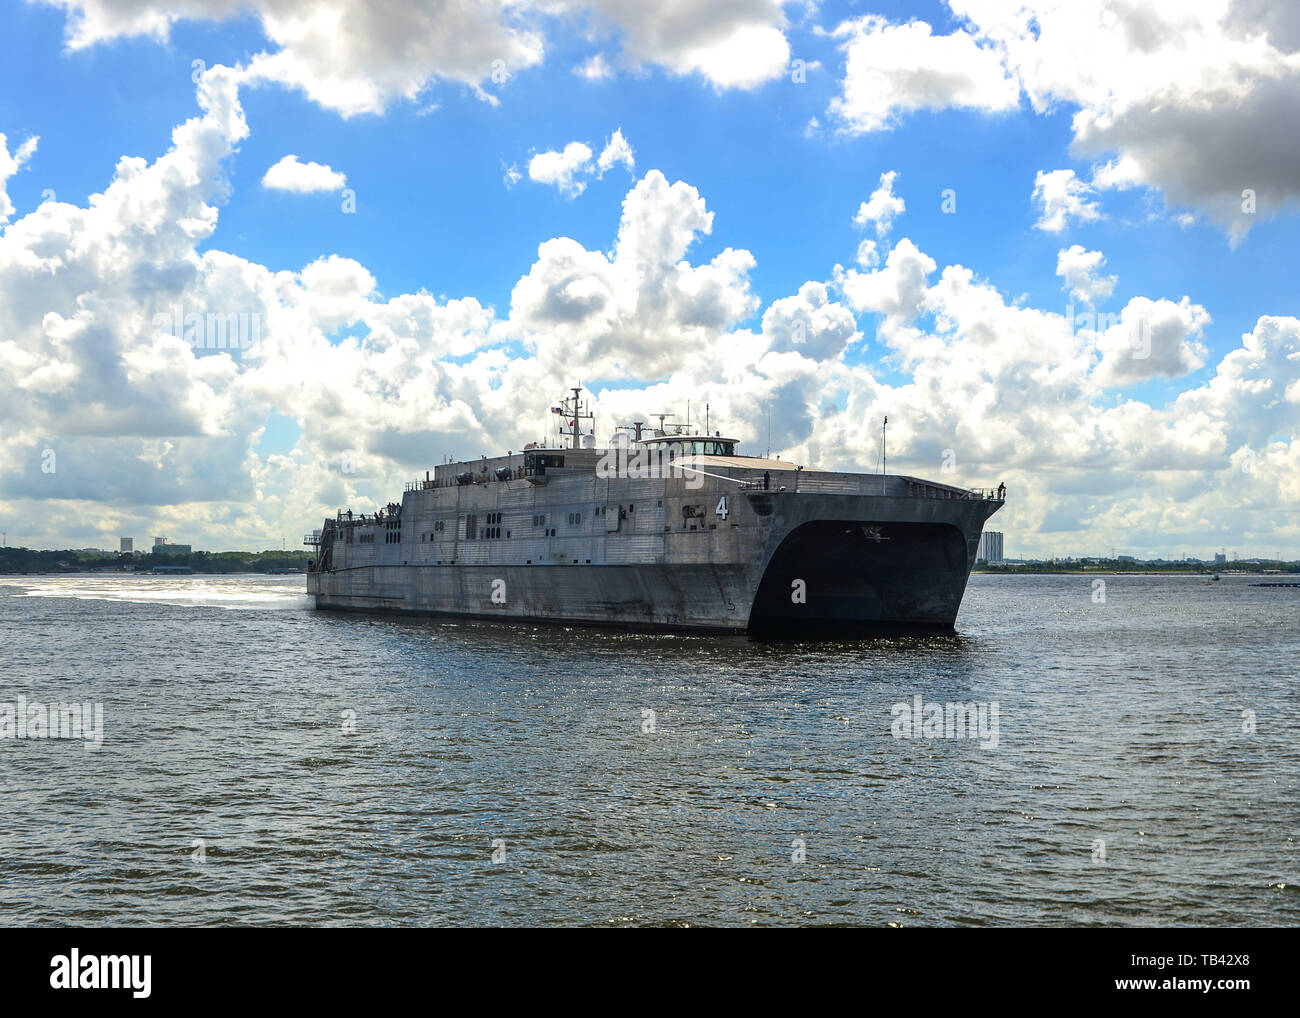 190528-N-FV739-059  SINGAPORE (May 28, 2019) The Military Sealift Command expeditionary fast transport ship USNS Fall River (T-EPF 4) arrives in Sembawang Wharves following its last Pacific Partnership mission stop in Thailand. Pacific Partnership, now in its 14th iteration, is the largest annual multinational humanitarian assistance and disaster relief preparedness mission conducted in the Indo-Pacific. Each year the mission team works collectively with host and partner nations to enhance regional interoperability and disaster response capabilities, increase security and stability in the regi - Stock Image